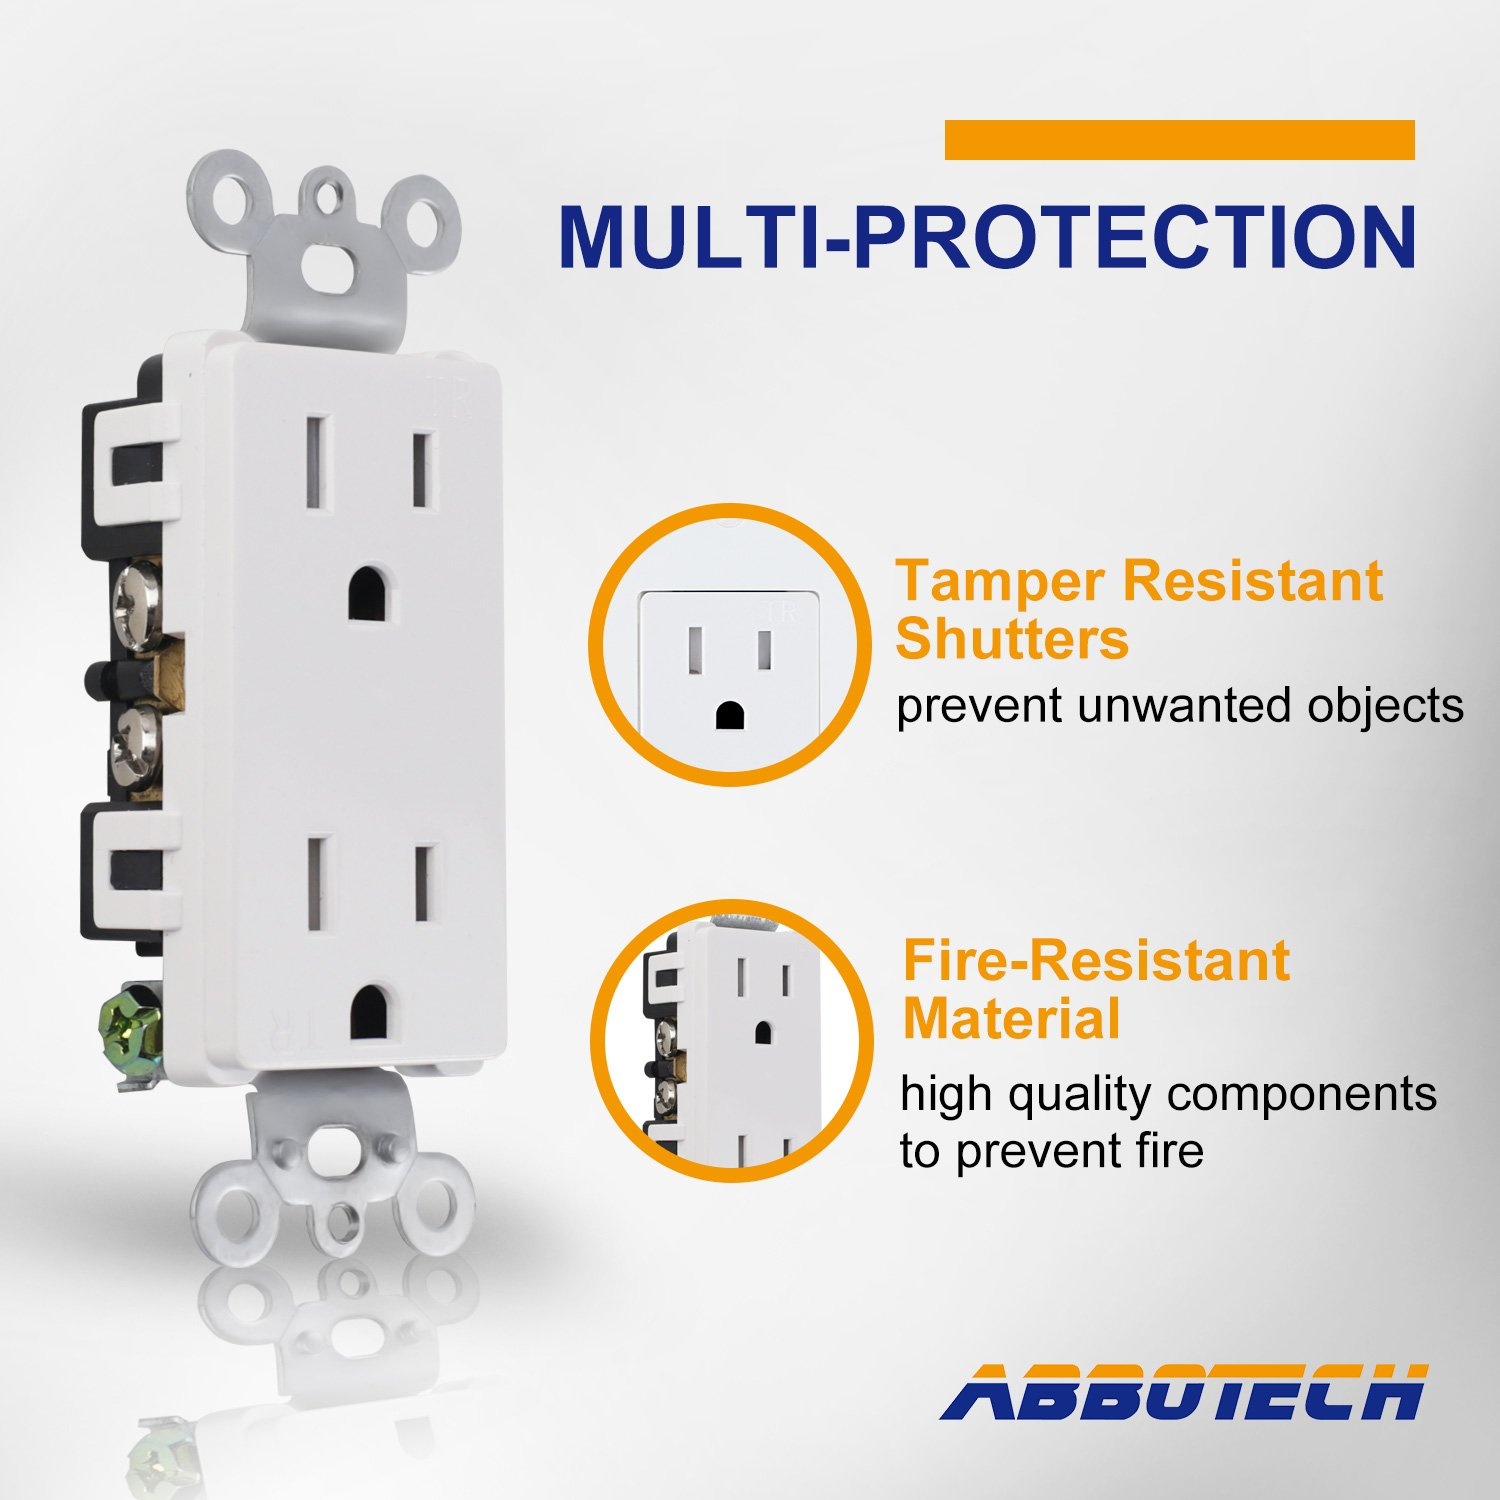 AbboTech Light Switch With Wall Plates Included,Decorative ON//OFF Wall Switch Single Pole,15A,120-270V,Residential/&Commercial Grade,10 Pack,UL Listed,White